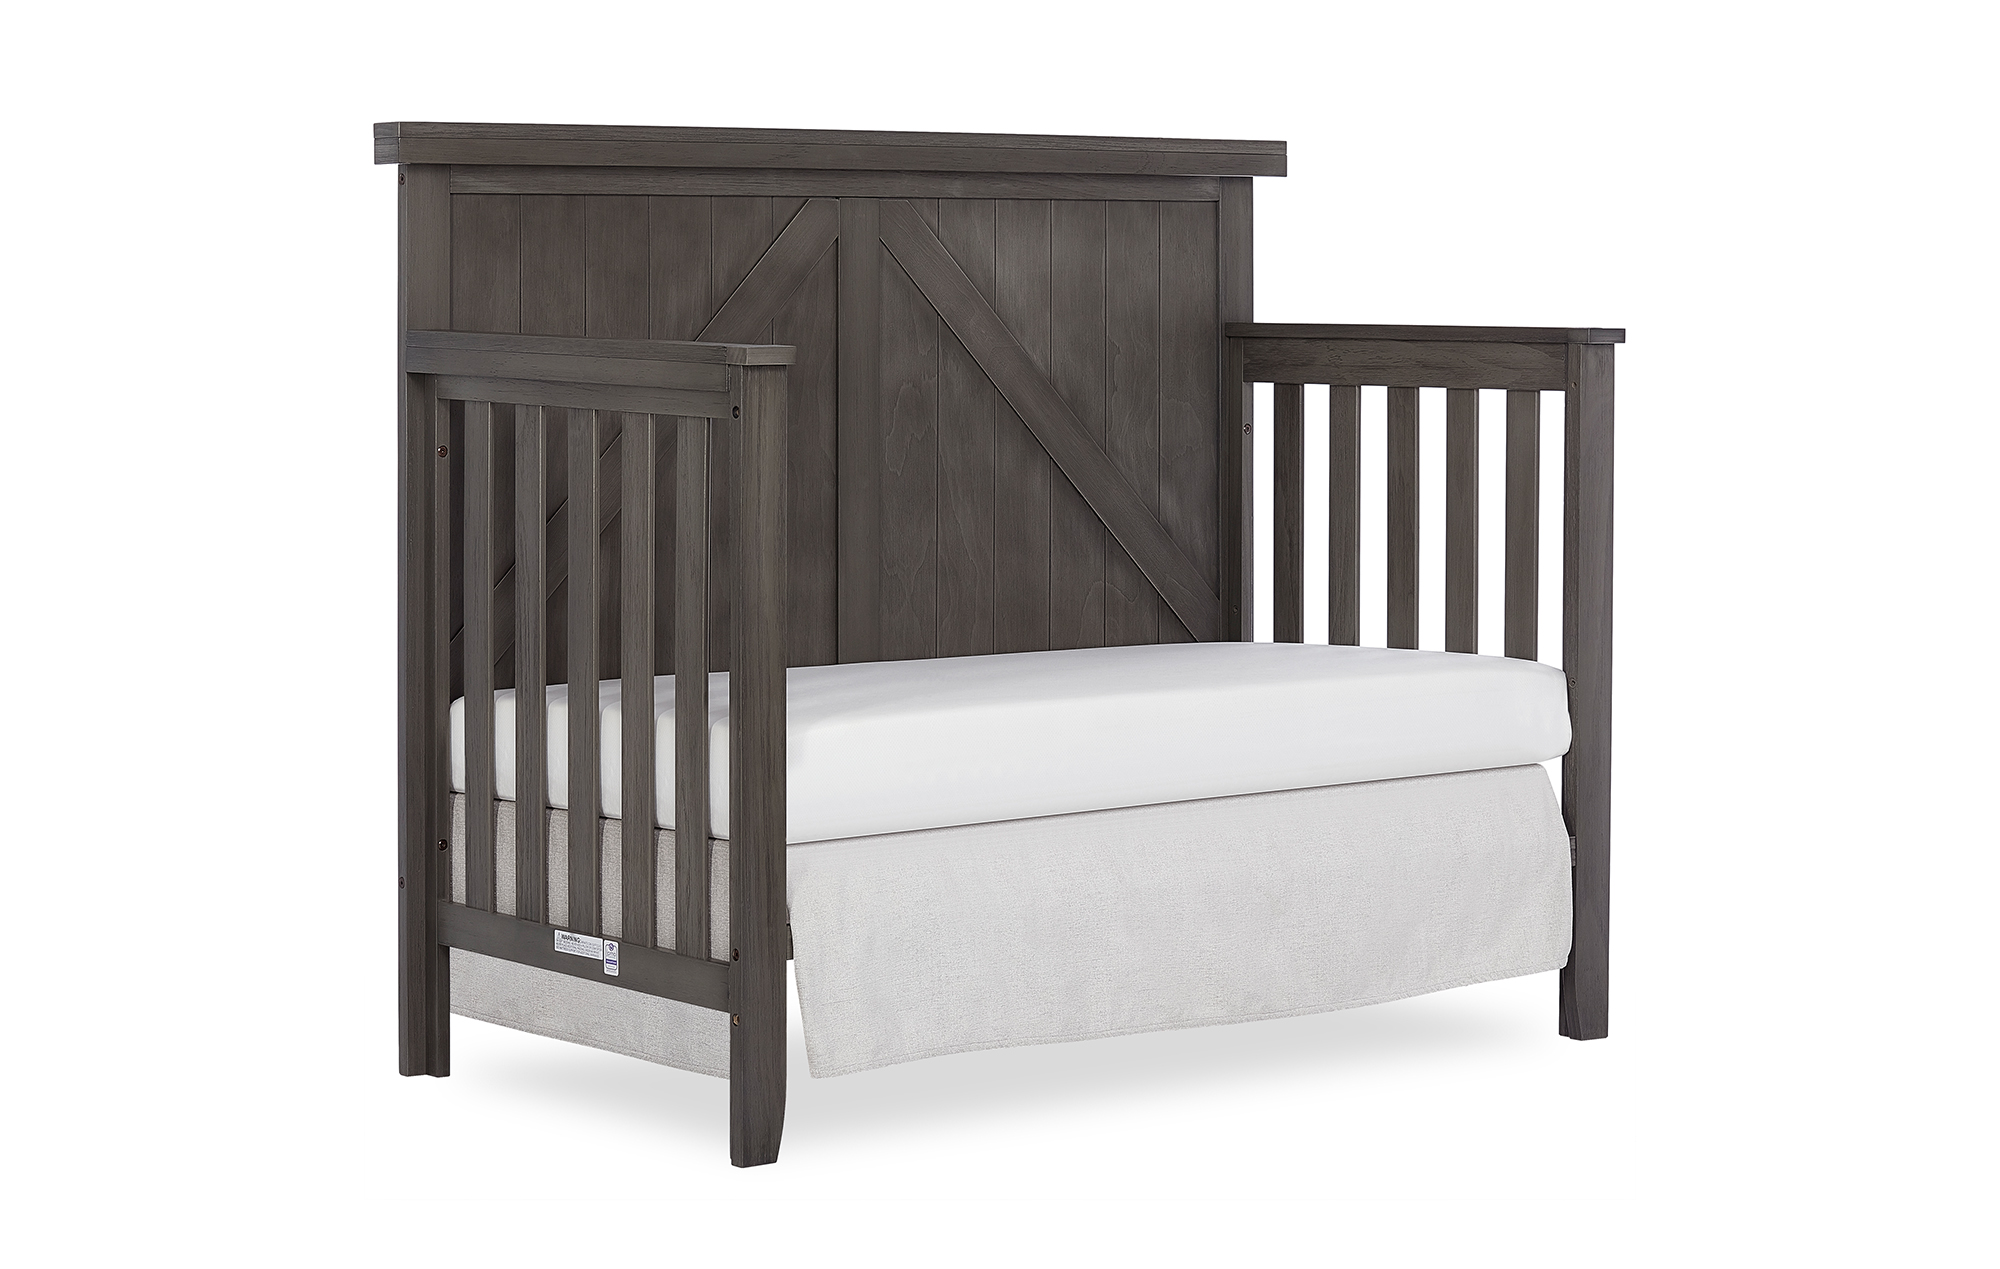 771BR-WGREY Olive Day Bed